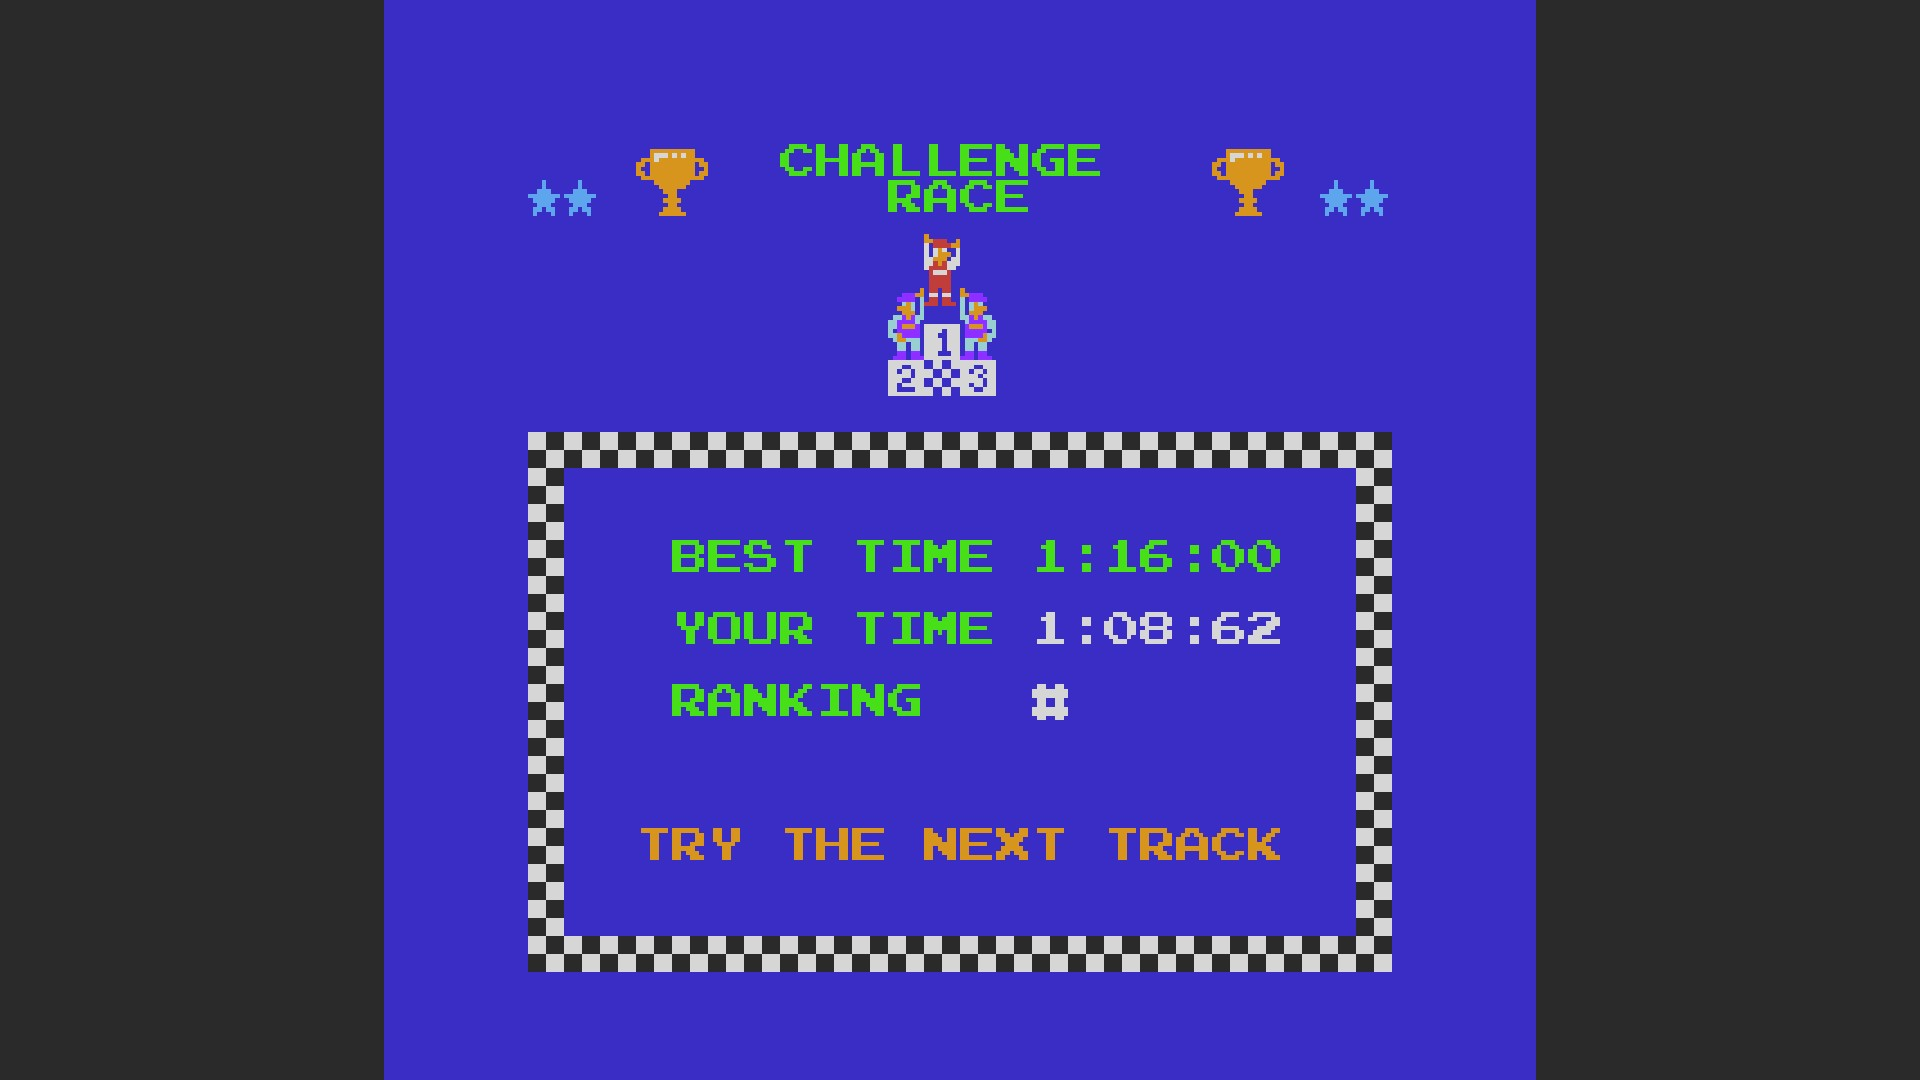 Excitebike: Track 2 [Selection B] time of 0:01:08.62